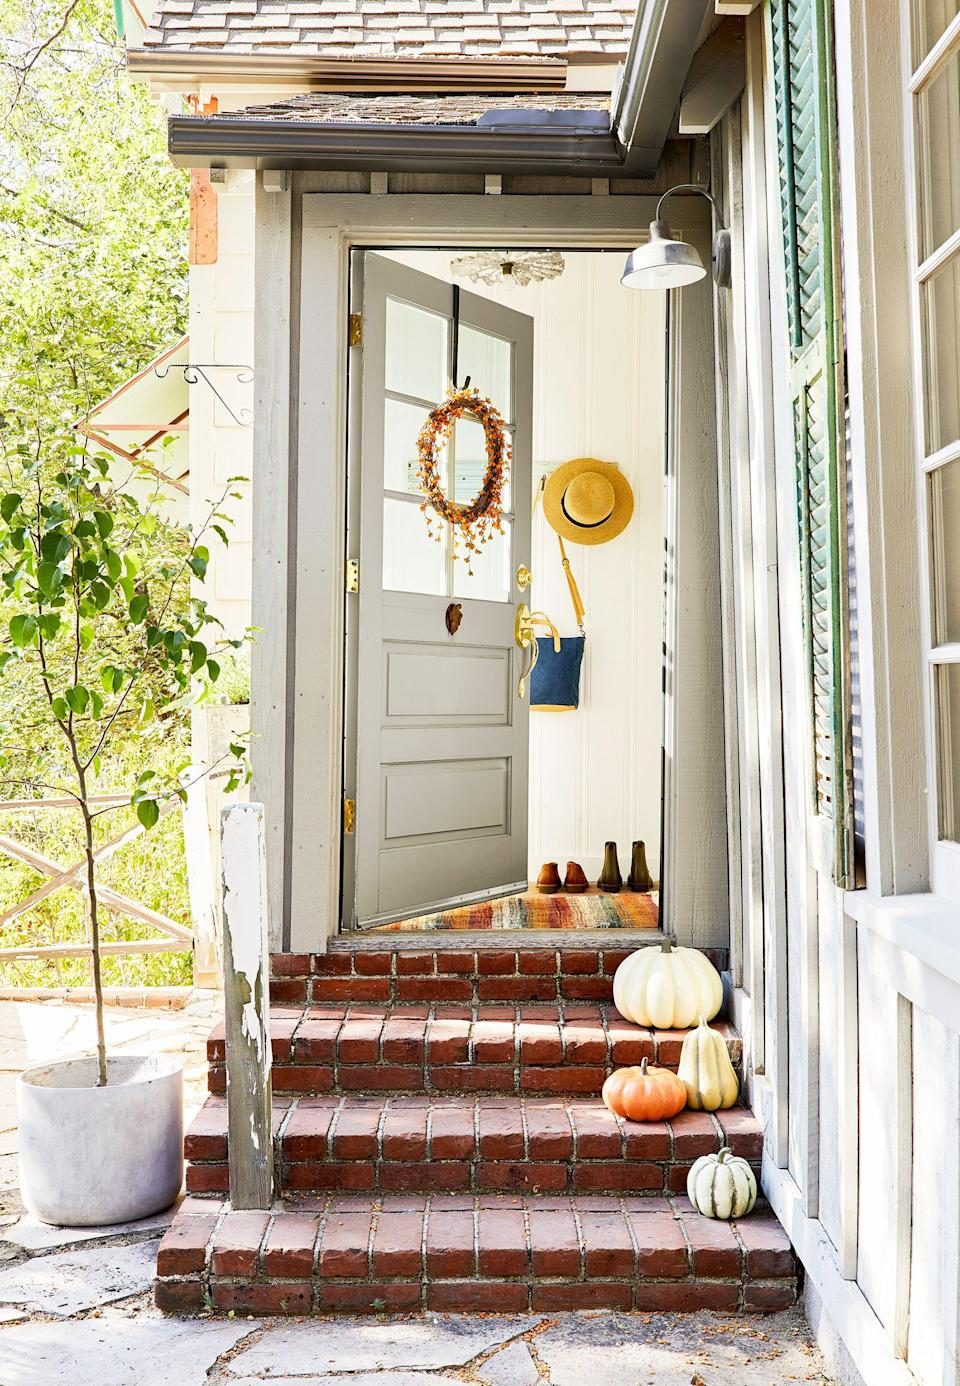 """<p>Out of the four <a href=""""https://www.housebeautiful.com/room-decorating/colors/tips/g912/fall-color-schemes/"""" rel=""""nofollow noopener"""" target=""""_blank"""" data-ylk=""""slk:seasons"""" class=""""link rapid-noclick-resp"""">seasons</a>, your front door probably gets the most foot traffic during <a href=""""https://www.housebeautiful.com/home-remodeling/interior-designers/tips/g956/cozy-fall-home-decor/"""" rel=""""nofollow noopener"""" target=""""_blank"""" data-ylk=""""slk:fall"""" class=""""link rapid-noclick-resp"""">fall</a>. From trick-or-treaters to <a href=""""https://www.housebeautiful.com/entertaining/table-decor/g1535/fall-table-decorating-ideas/"""" rel=""""nofollow noopener"""" target=""""_blank"""" data-ylk=""""slk:Thanksgiving"""" class=""""link rapid-noclick-resp"""">Thanksgiving</a> guests—and, hopefully, deliveries with gifts for the upcoming <a href=""""https://www.housebeautiful.com/entertaining/holidays-celebrations/tips/g2804/outdoor-christmas-decorations/"""" rel=""""nofollow noopener"""" target=""""_blank"""" data-ylk=""""slk:holidays"""" class=""""link rapid-noclick-resp"""">holidays</a>—there will be plenty of eyes on your front door, which means it's time to spruce things up with stylish fall door decor. If you're inclined to break out your go-to <a href=""""https://www.housebeautiful.com/home-remodeling/diy-projects/g2586/fall-wreaths/"""" rel=""""nofollow noopener"""" target=""""_blank"""" data-ylk=""""slk:fall wreath"""" class=""""link rapid-noclick-resp"""">fall wreath</a> and call it a day, hold off until you see these fun, festive, and elevated wall decor ideas. Read on for 25 chic ways to dress up your front door for the fall <span class=""""redactor-unlink"""">season ahead</span> (String lights! Seasonal door swag!). </p>"""